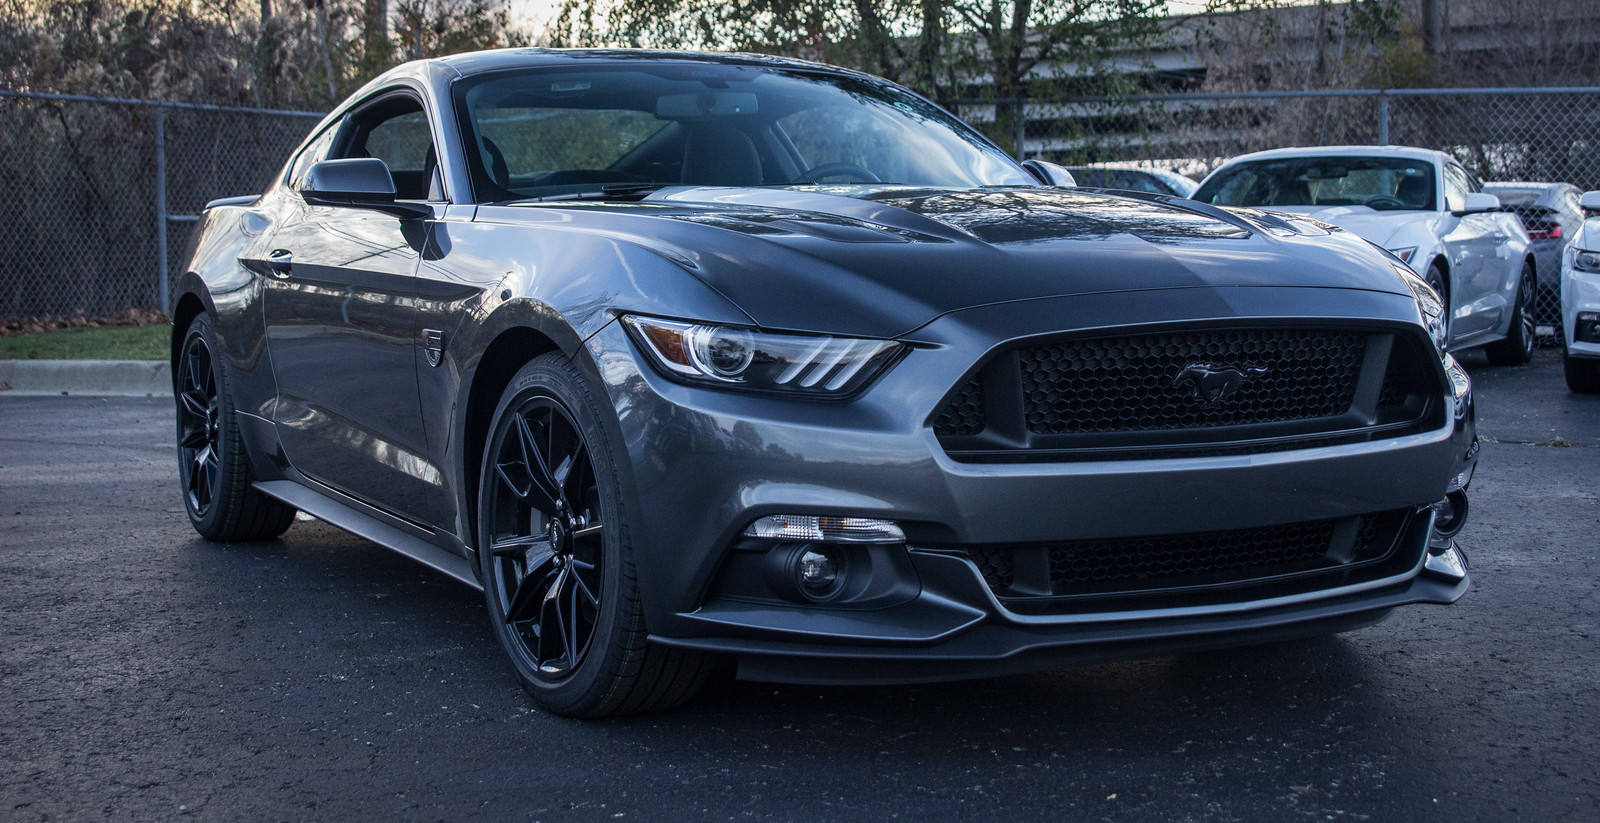 Military Autosource The 2017 Roush Warrior Mustang And